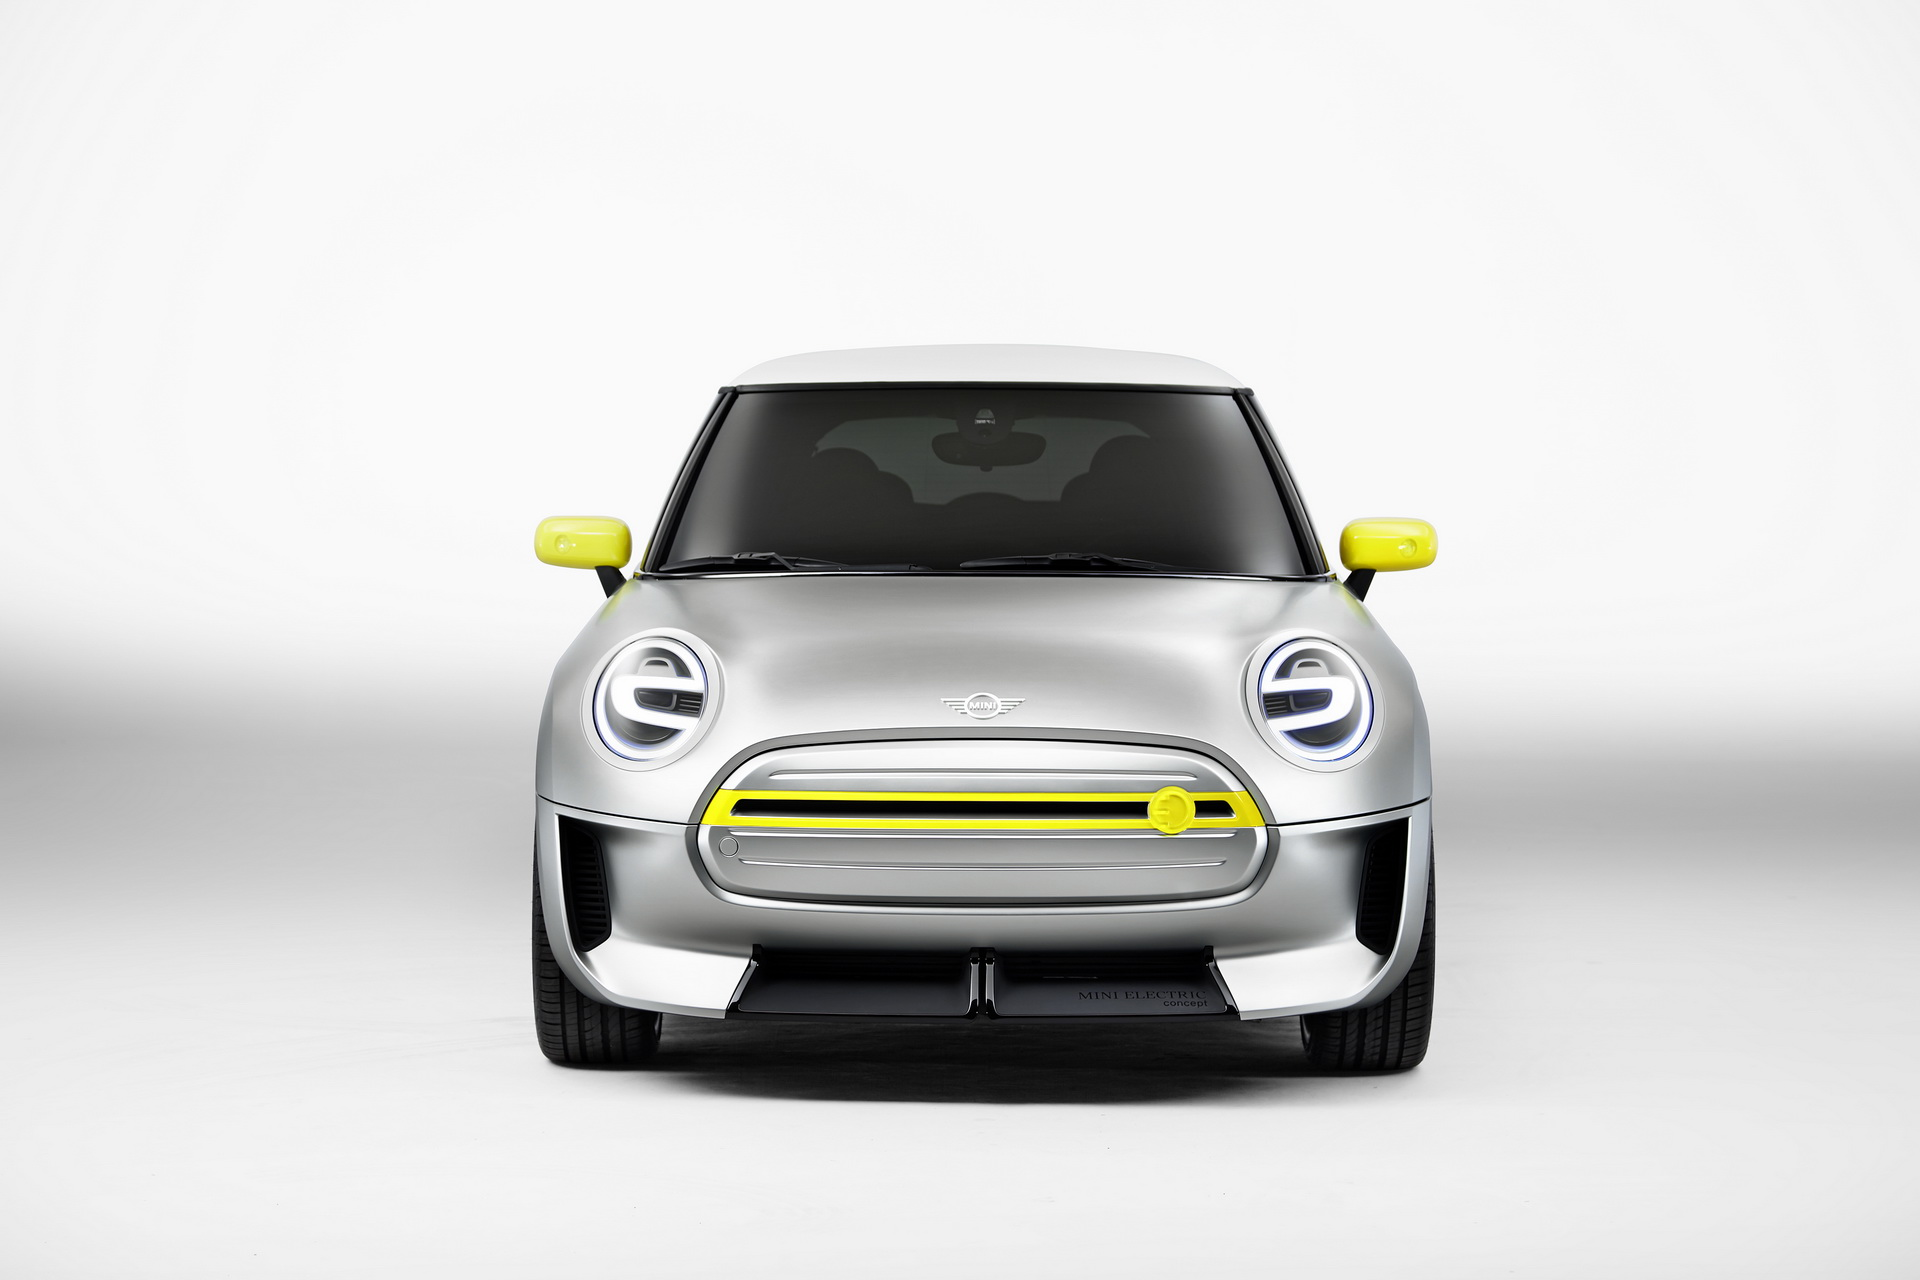 bd0fac6c-mini-electric-jcw-gp-concepts-6